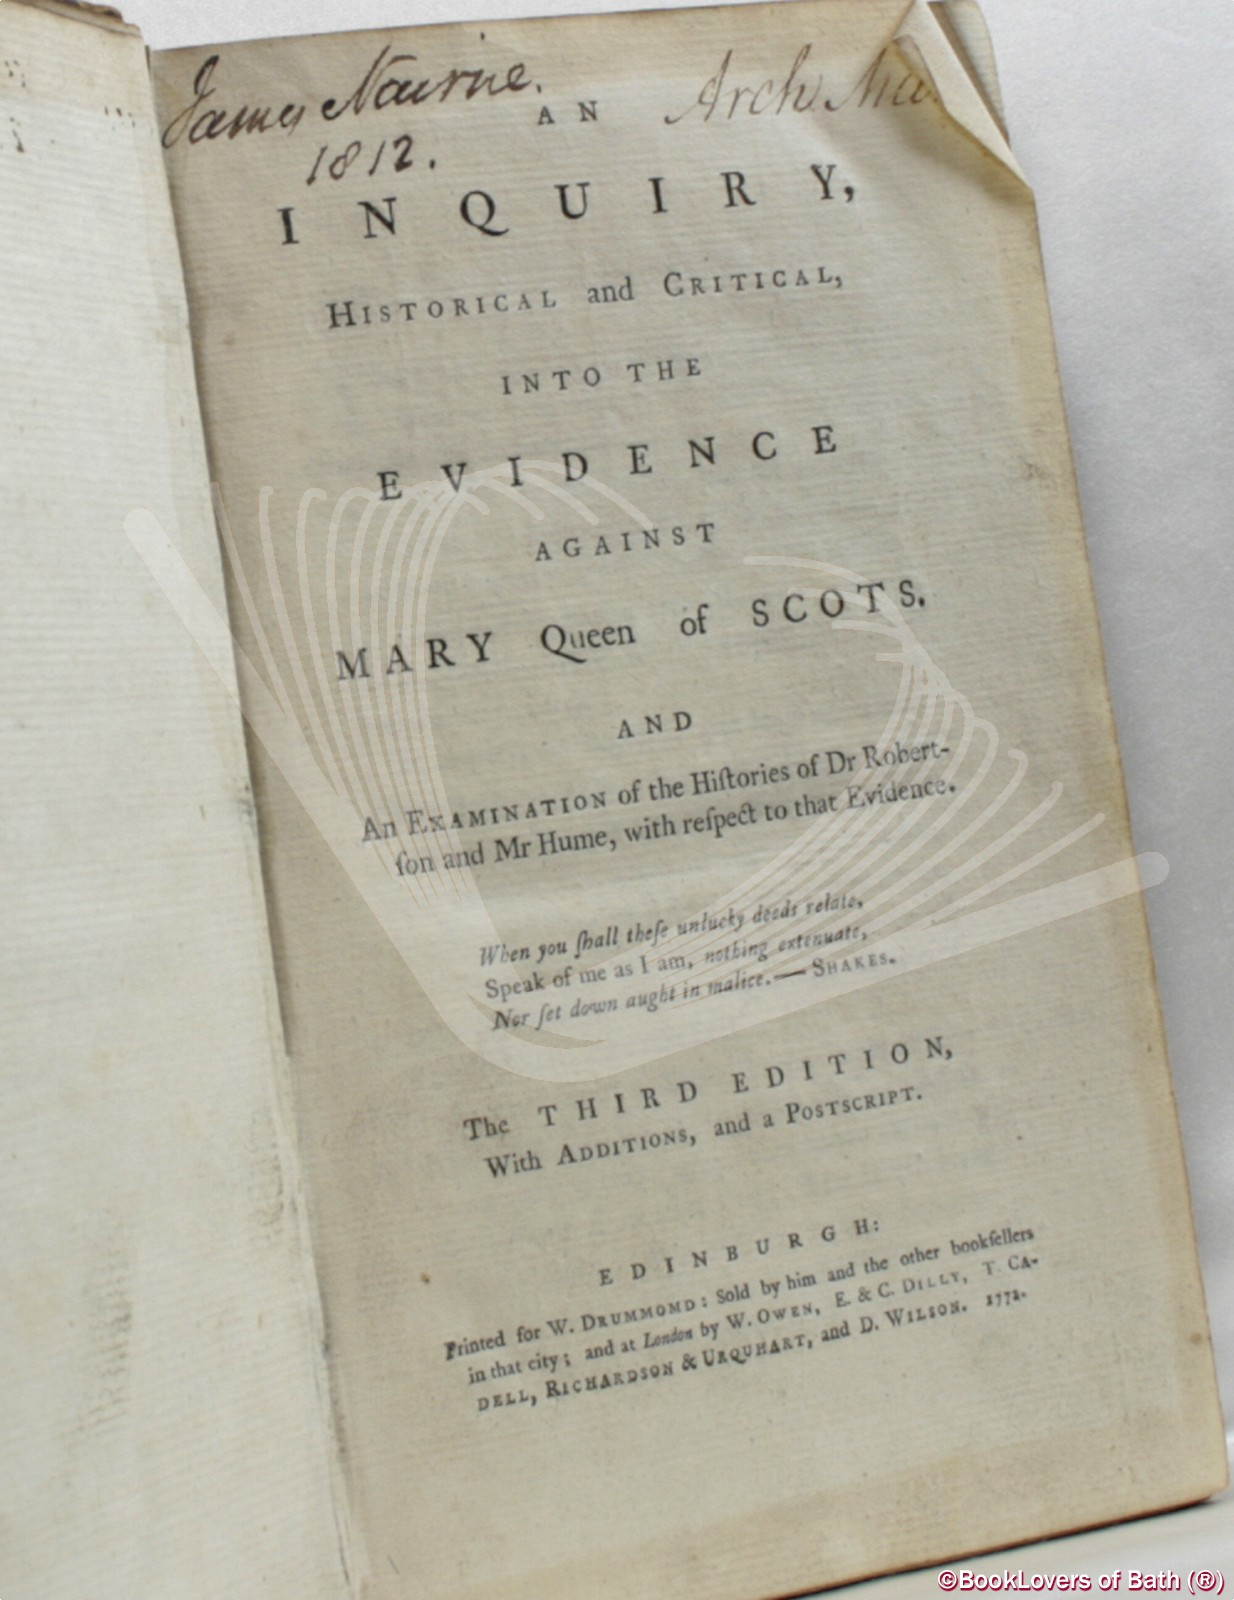 An Inquiry, Historical and Critical, Into the Evidence Against Mary Queen of Scots and an Examination of the Histories of Dr Robertson and Mr Hume, with Respect to That Evidence. the Third Edition with Additions, and a Postscript - William Tytler